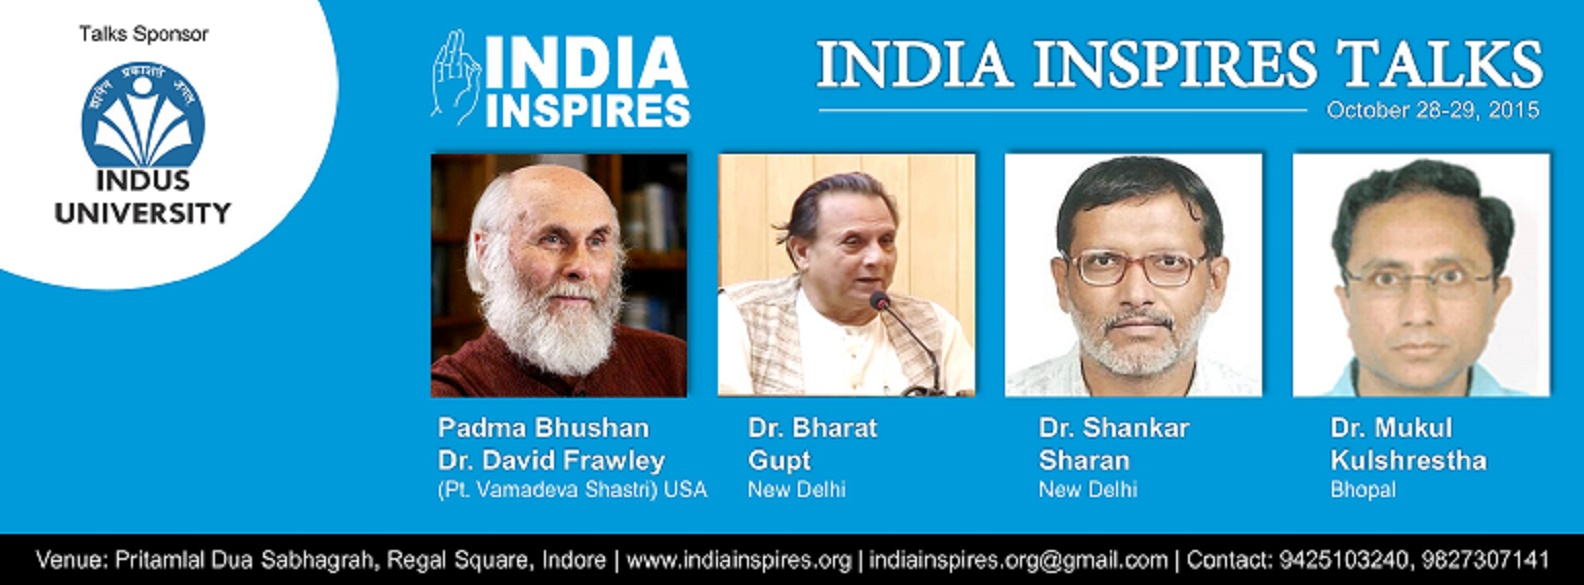 India Inspires Talks- Indian Civilization